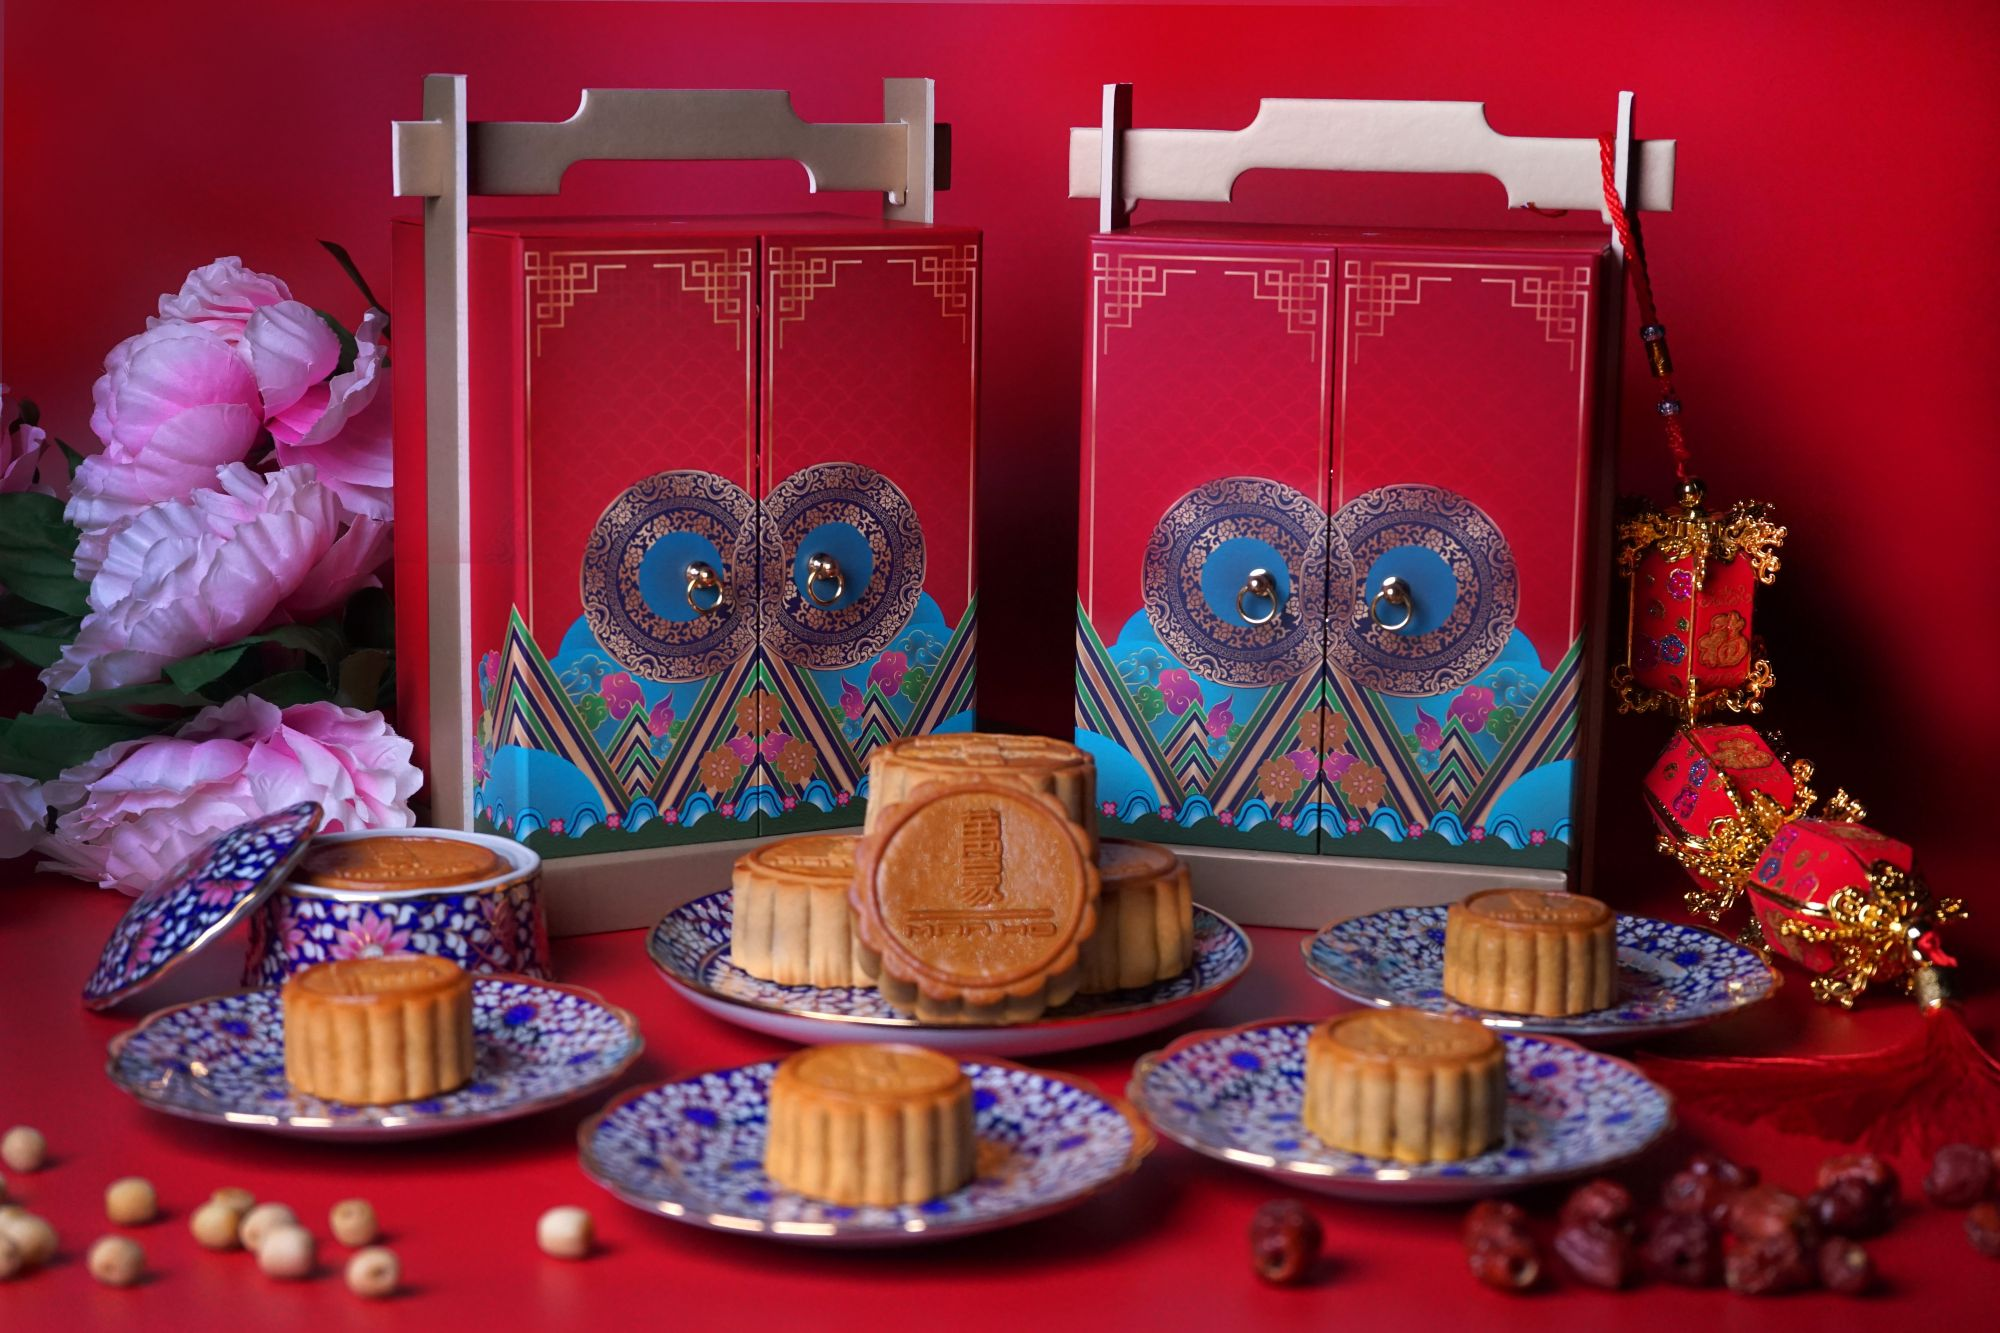 Mooncakes To Pre-Order For Mid-Autumn Festival 2019